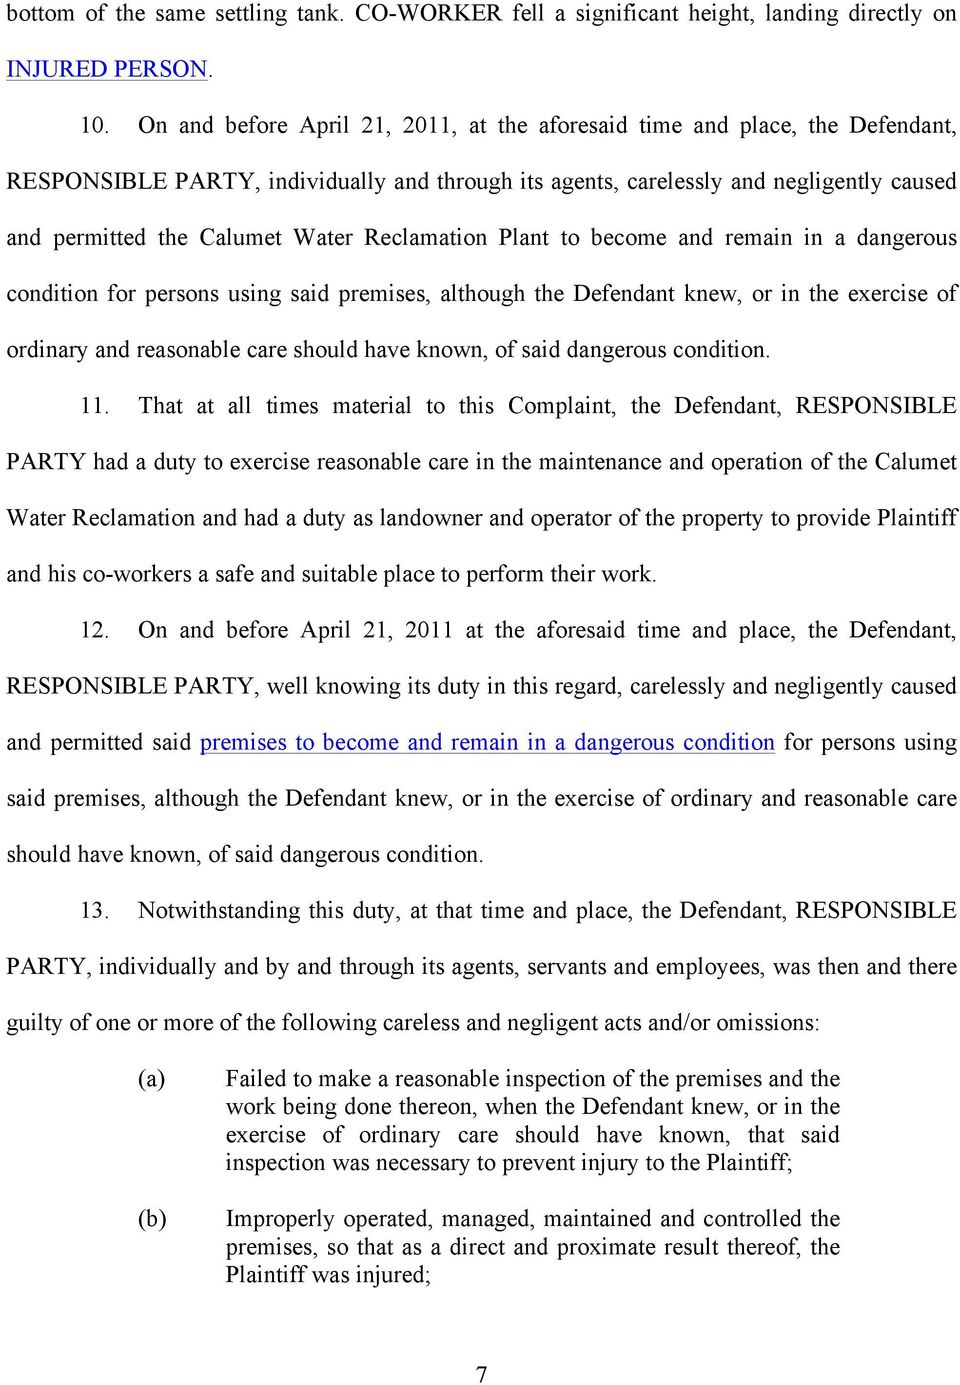 Reclamation Plant to become and remain in a dangerous condition for persons using said premises, although the Defendant knew, or in the exercise of ordinary and reasonable care should have known, of